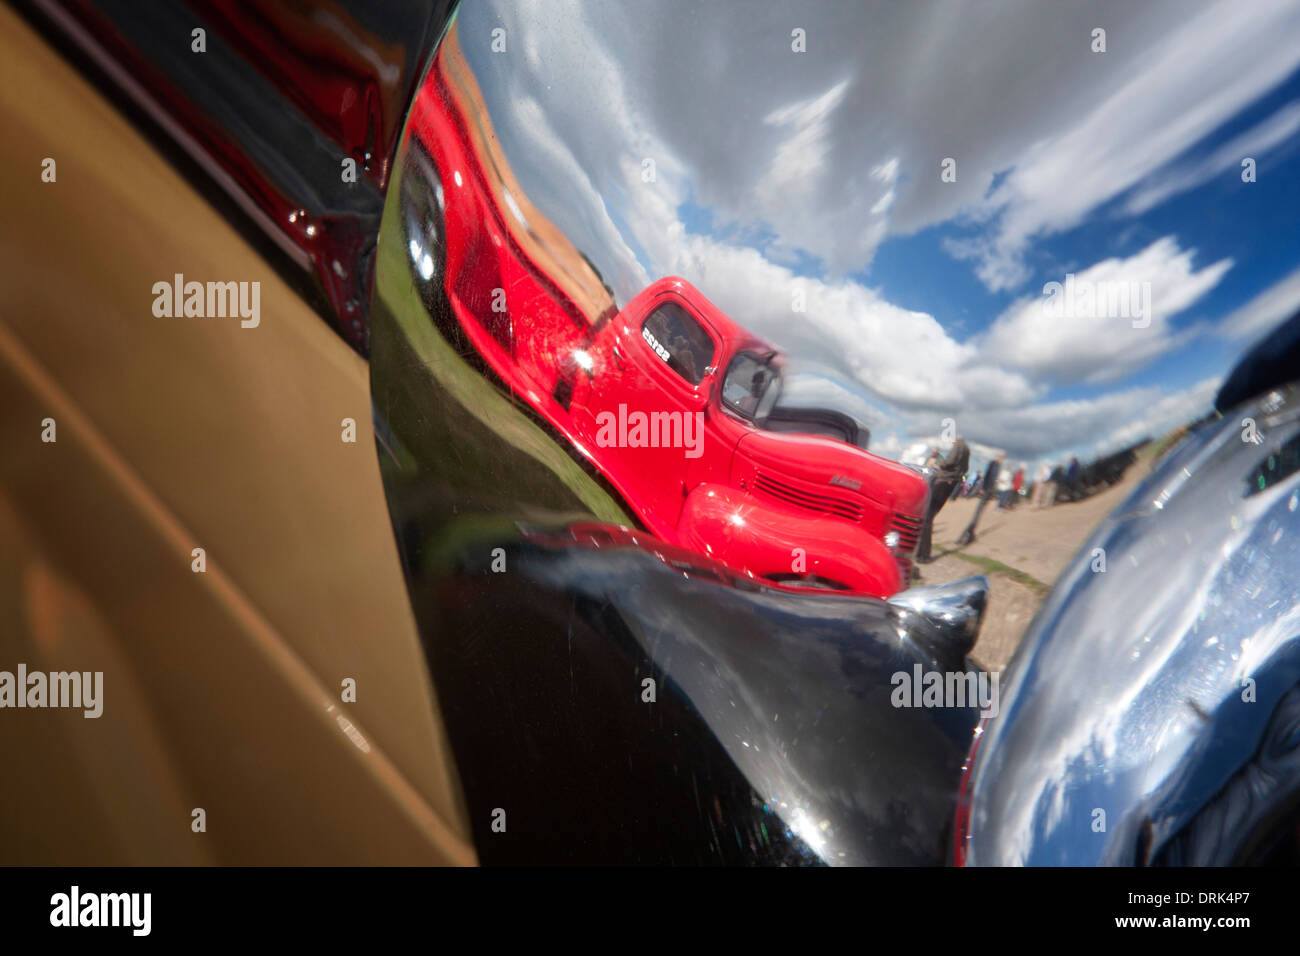 Reflection of pick up truck in chrome headlamp - Stock Image